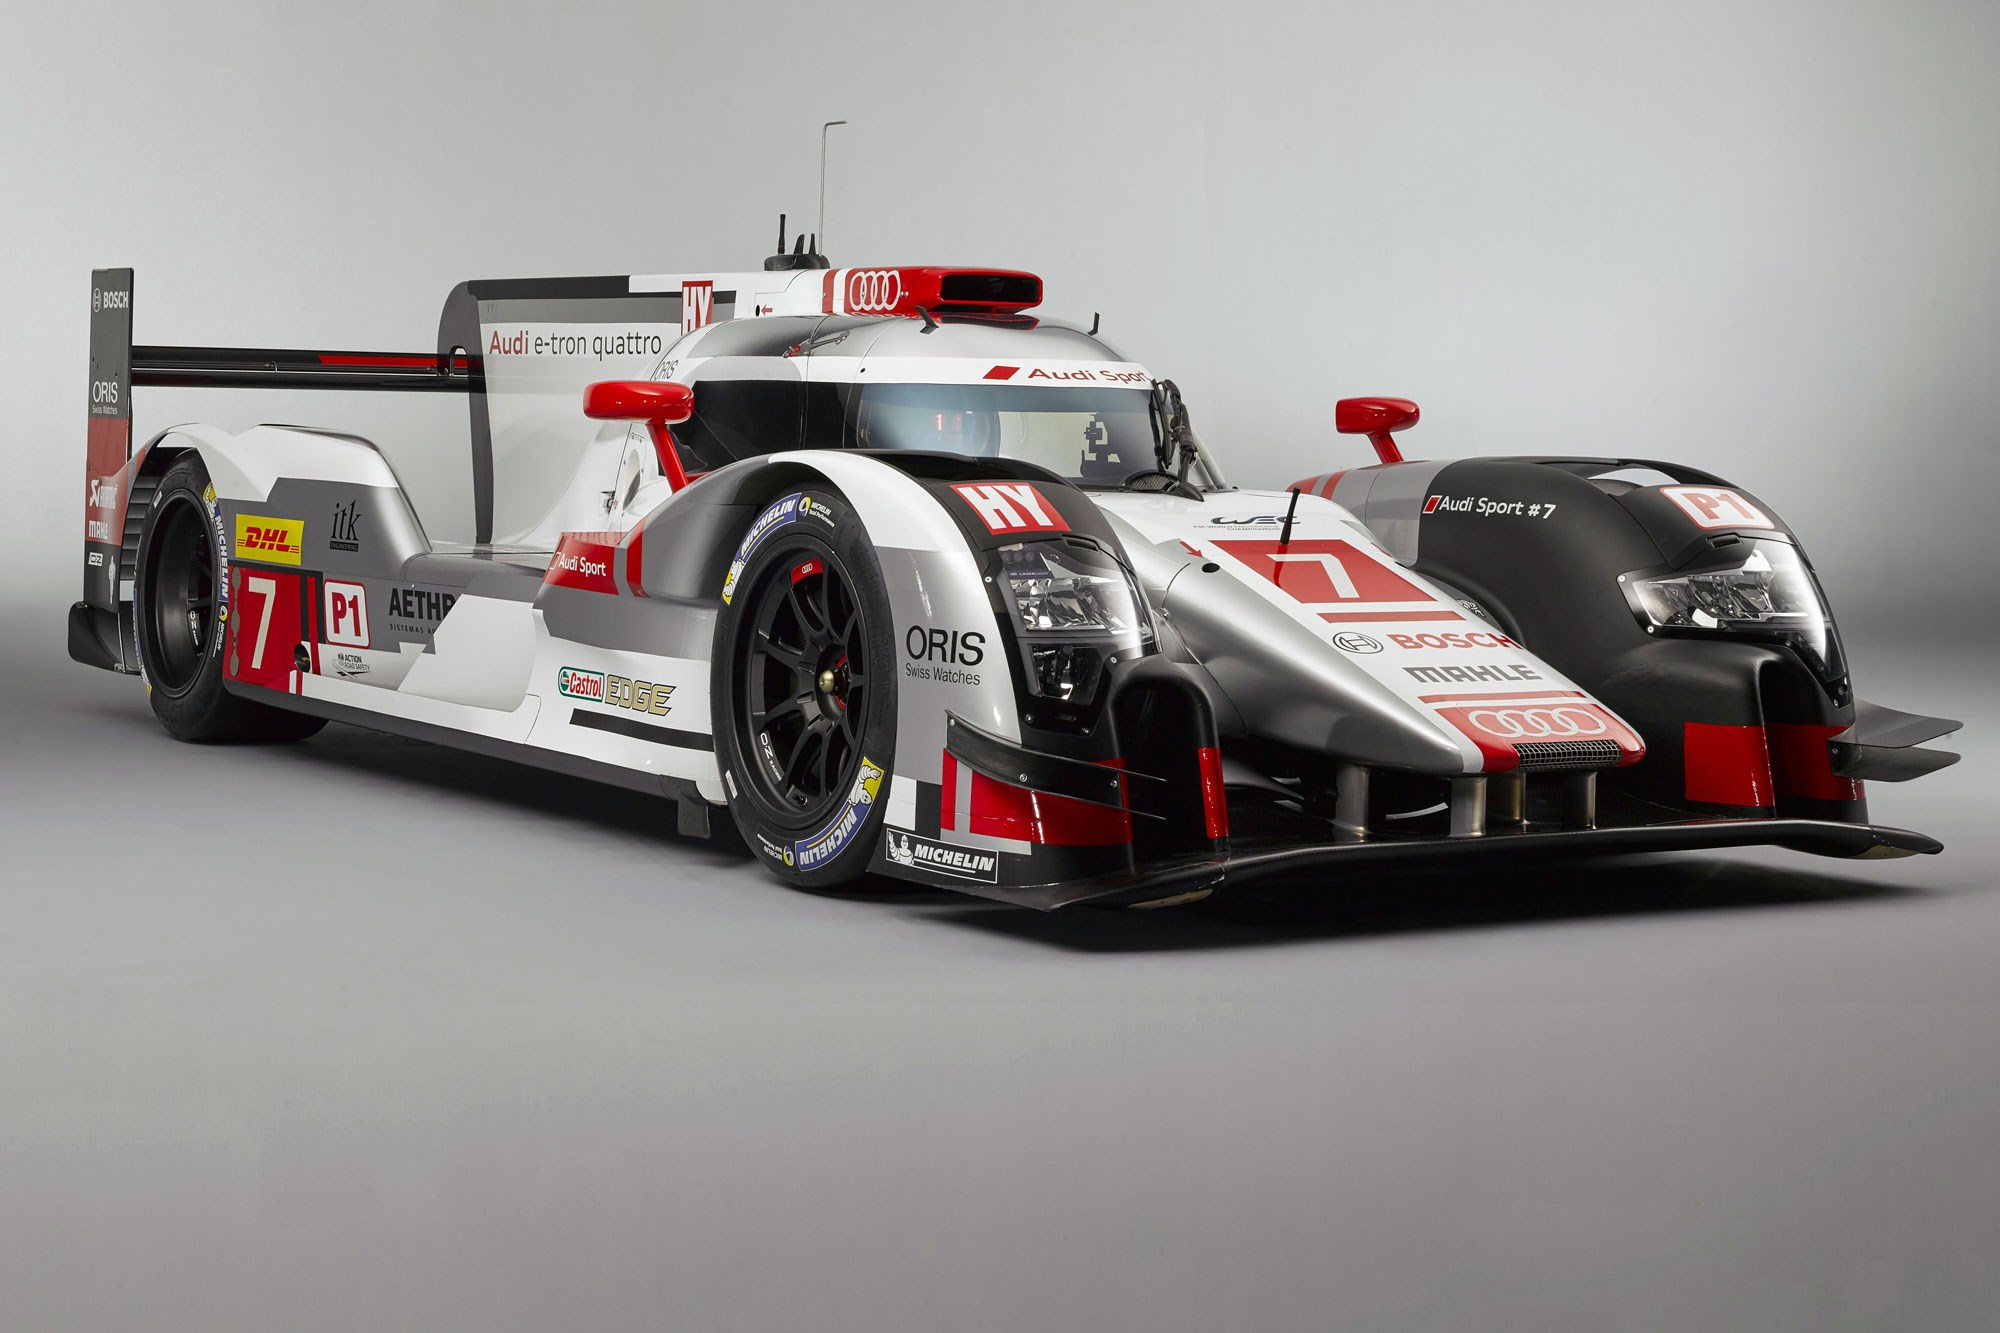 audi r18 e tron quattro 2015 le mans challenger revealed car magazine. Black Bedroom Furniture Sets. Home Design Ideas